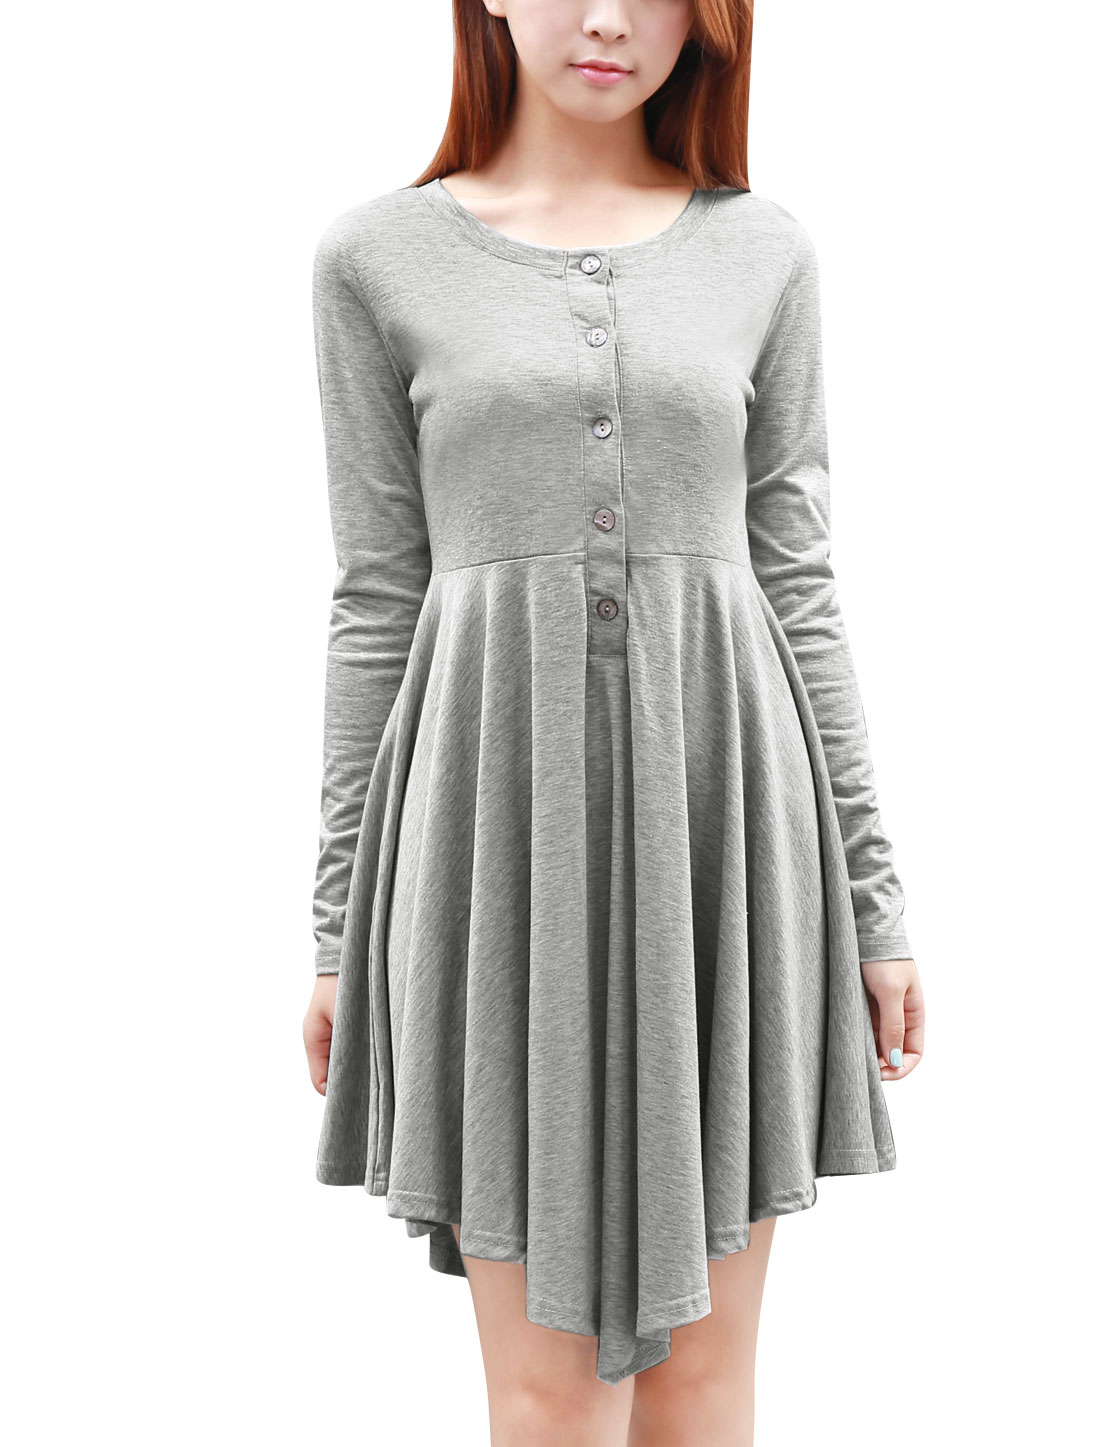 Women Stretchy Round Neck Long-Sleeved Button Front Dress Gray XS